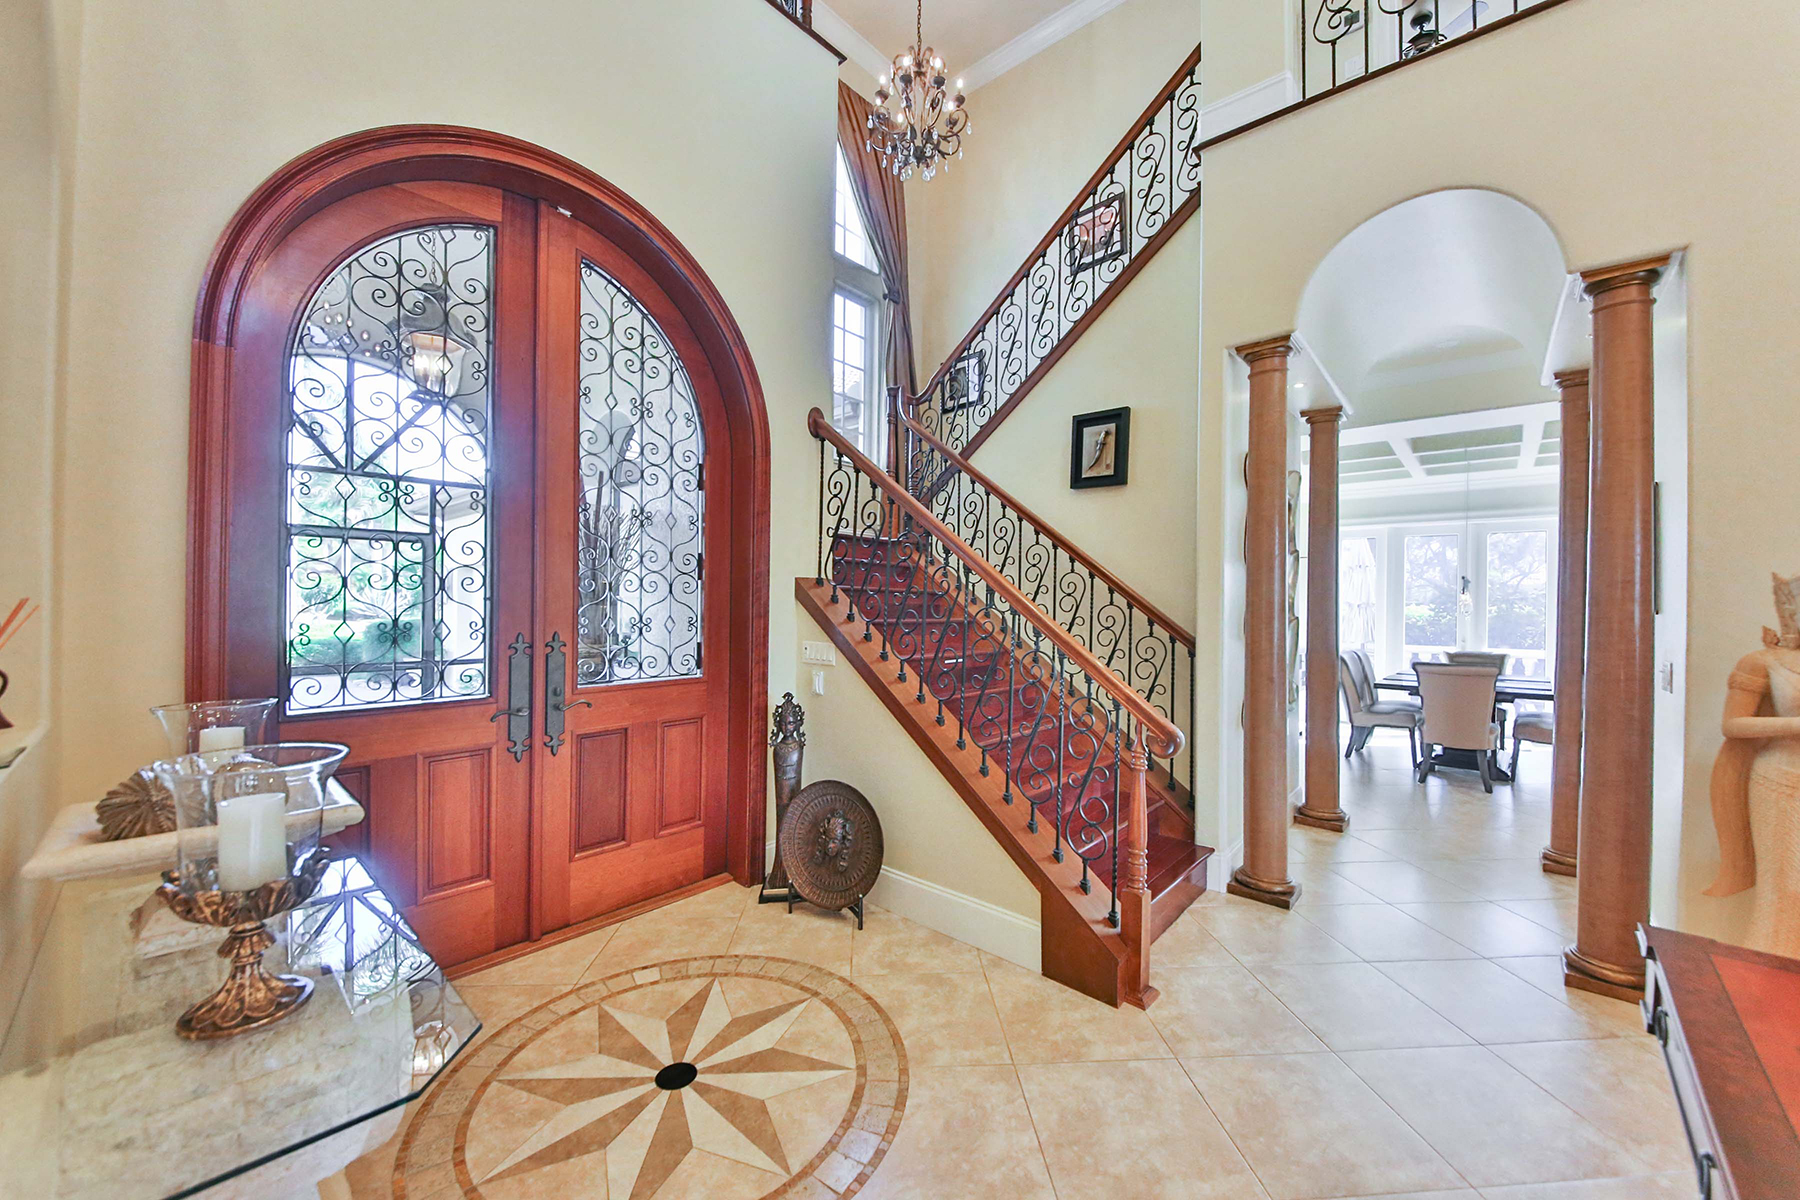 Single Family Home for Sale at LELY RESORT - TIGER ISLAND ESTATES Naples, Florida, 34113 United States